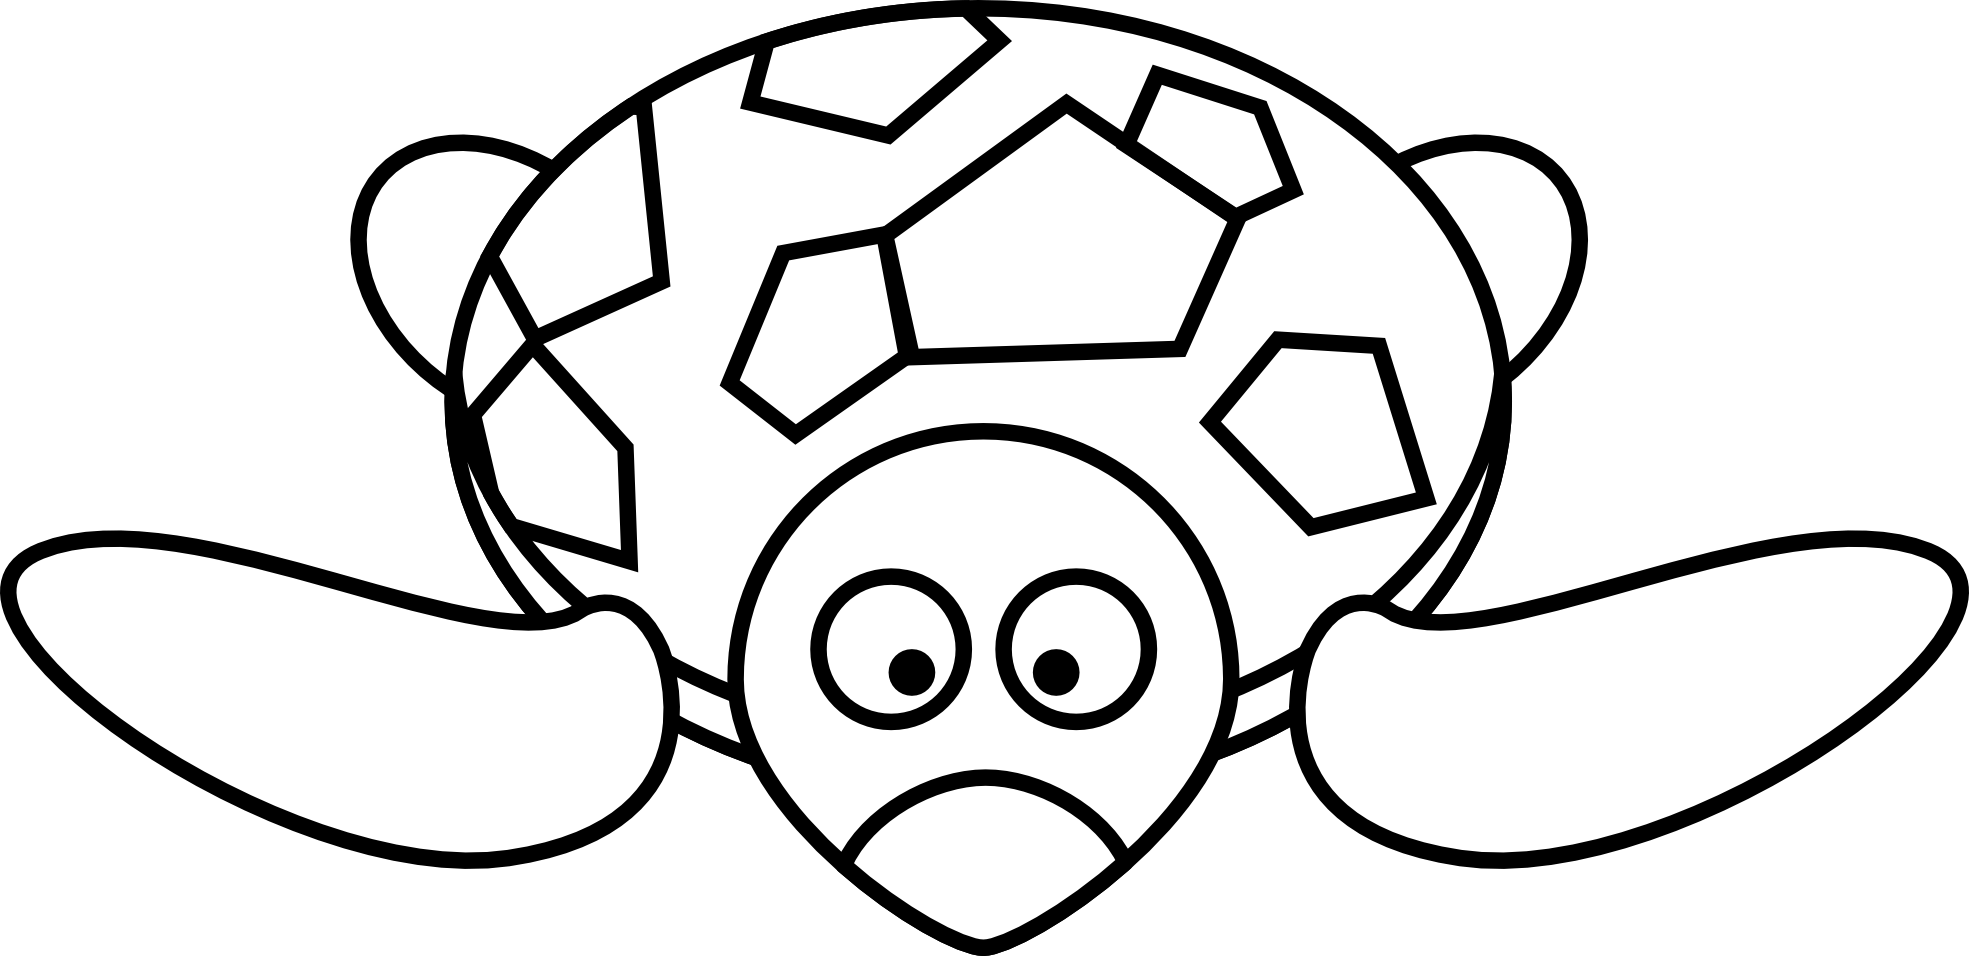 Free Turtle Clipart Black And White Download Free Clip